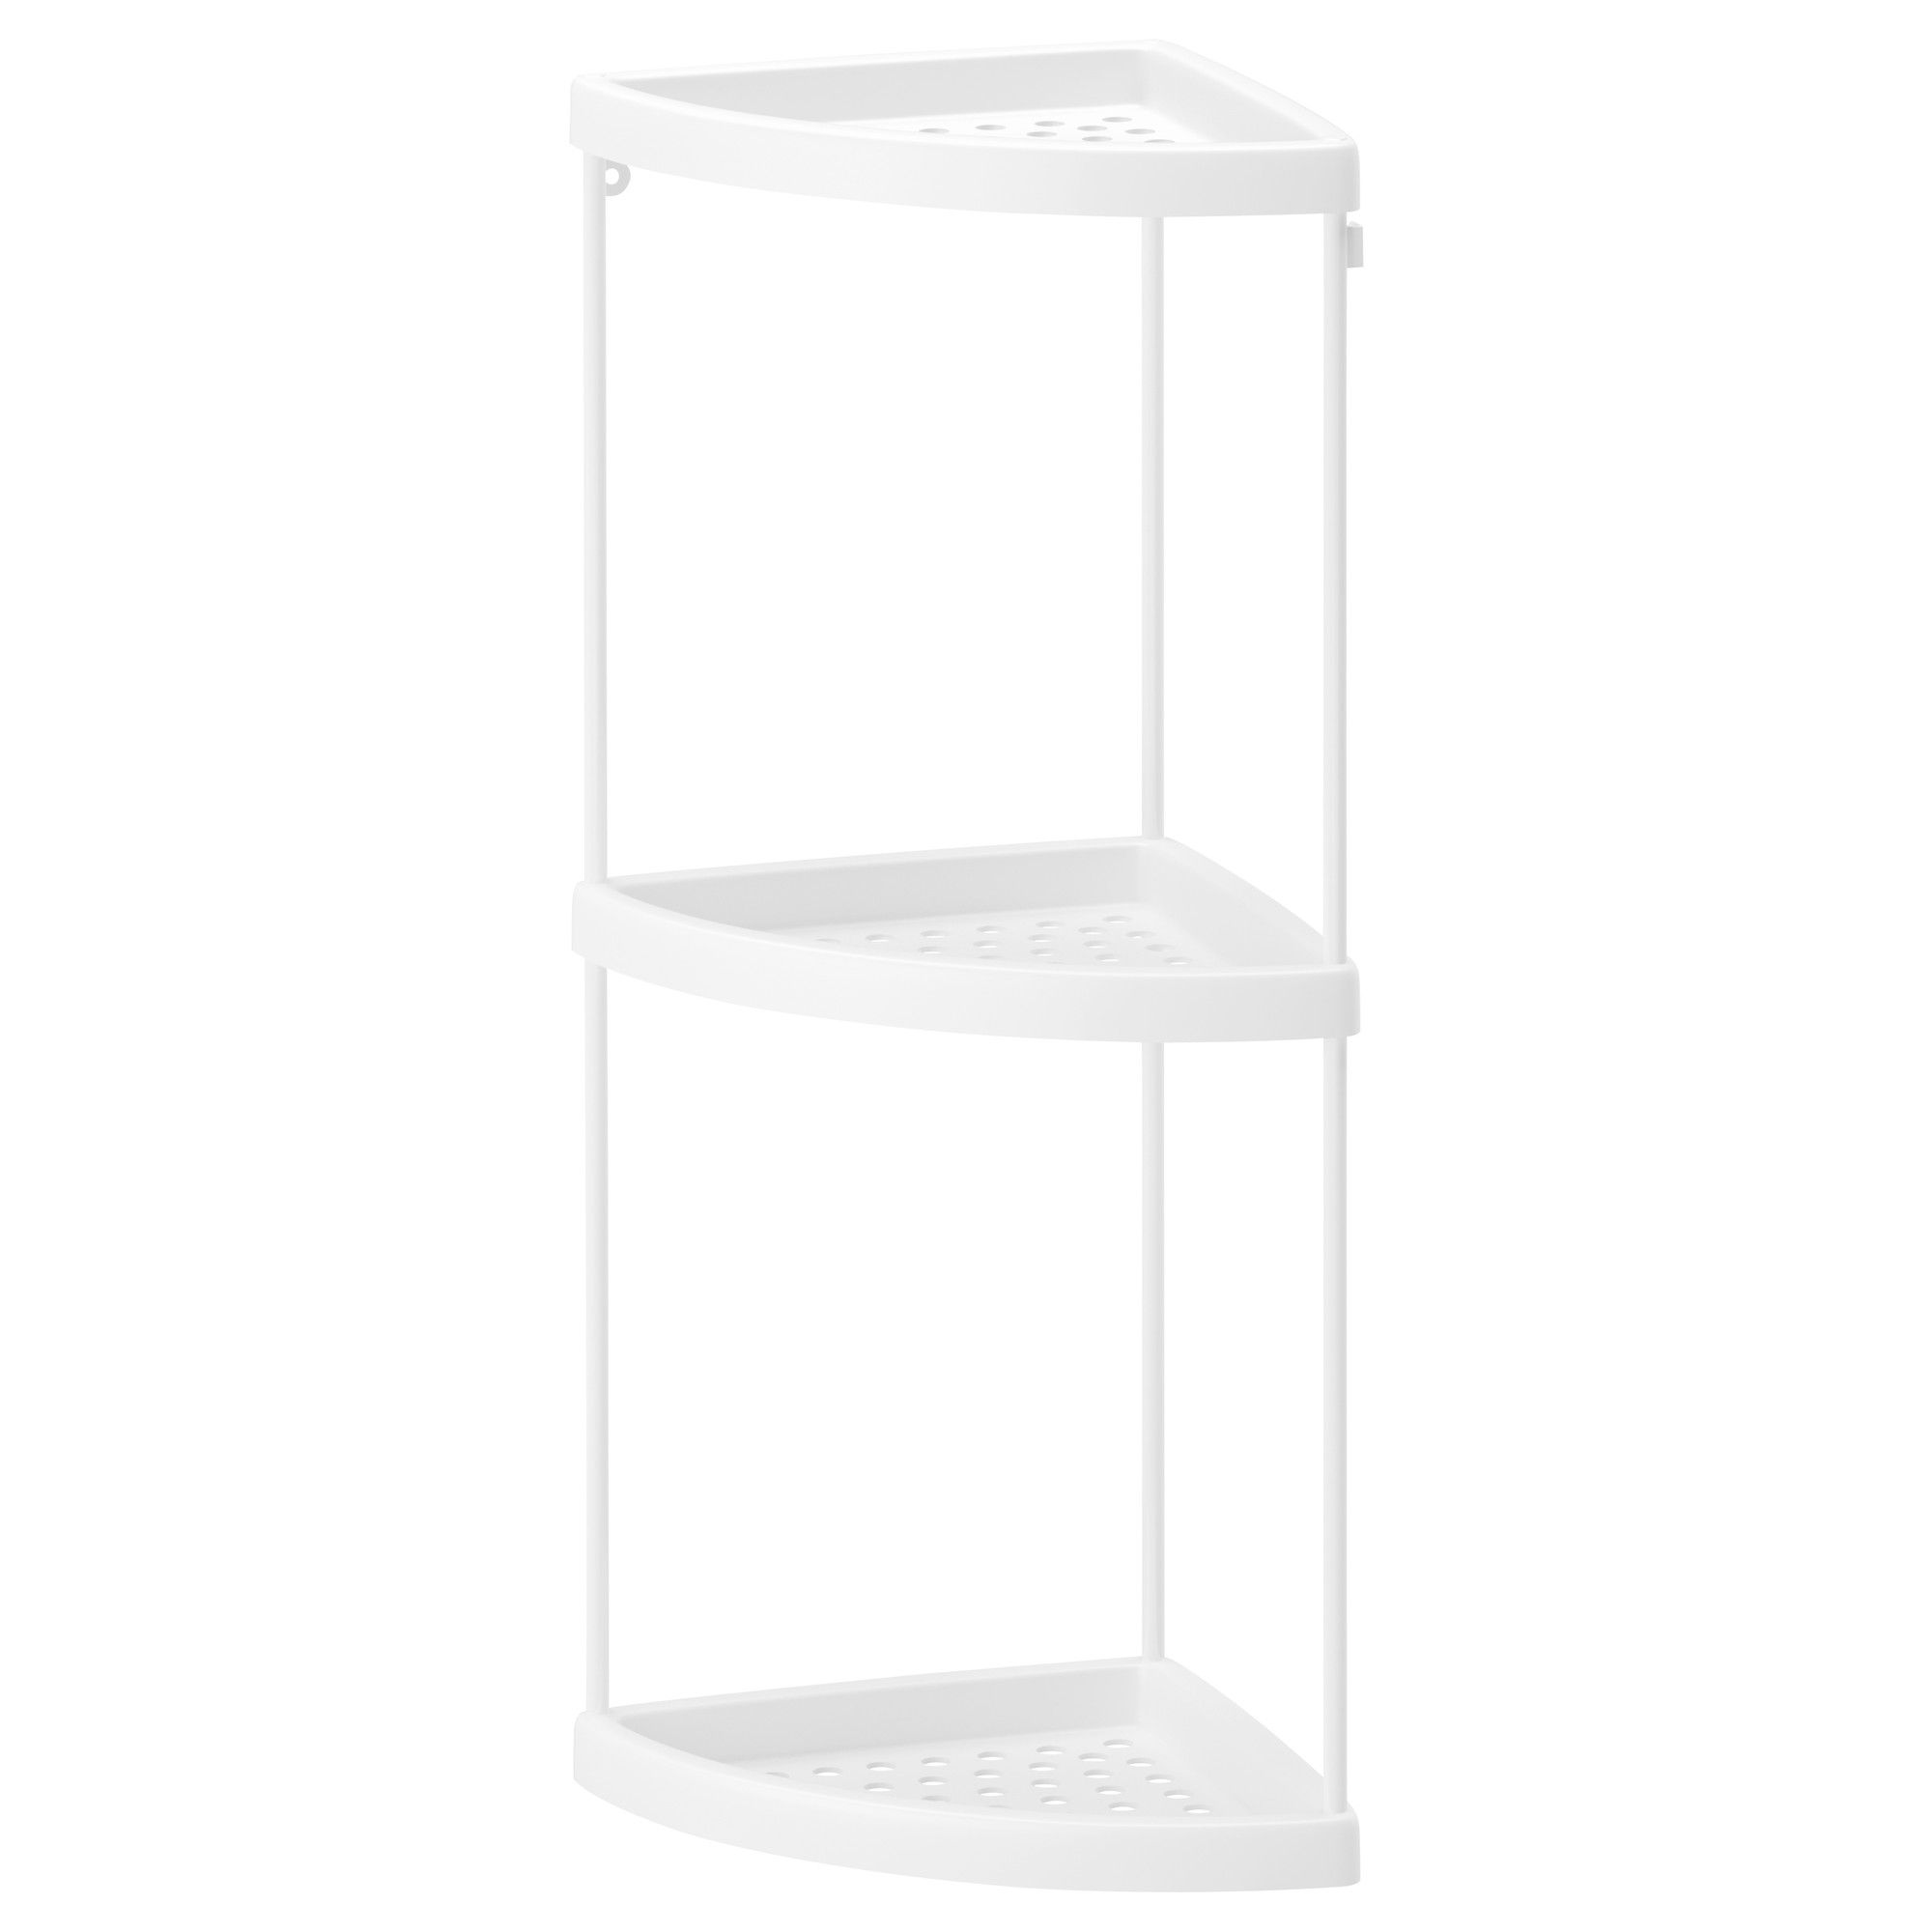 BOLMEN Corner shelf - IKEA this can help separate our shampoos in ...